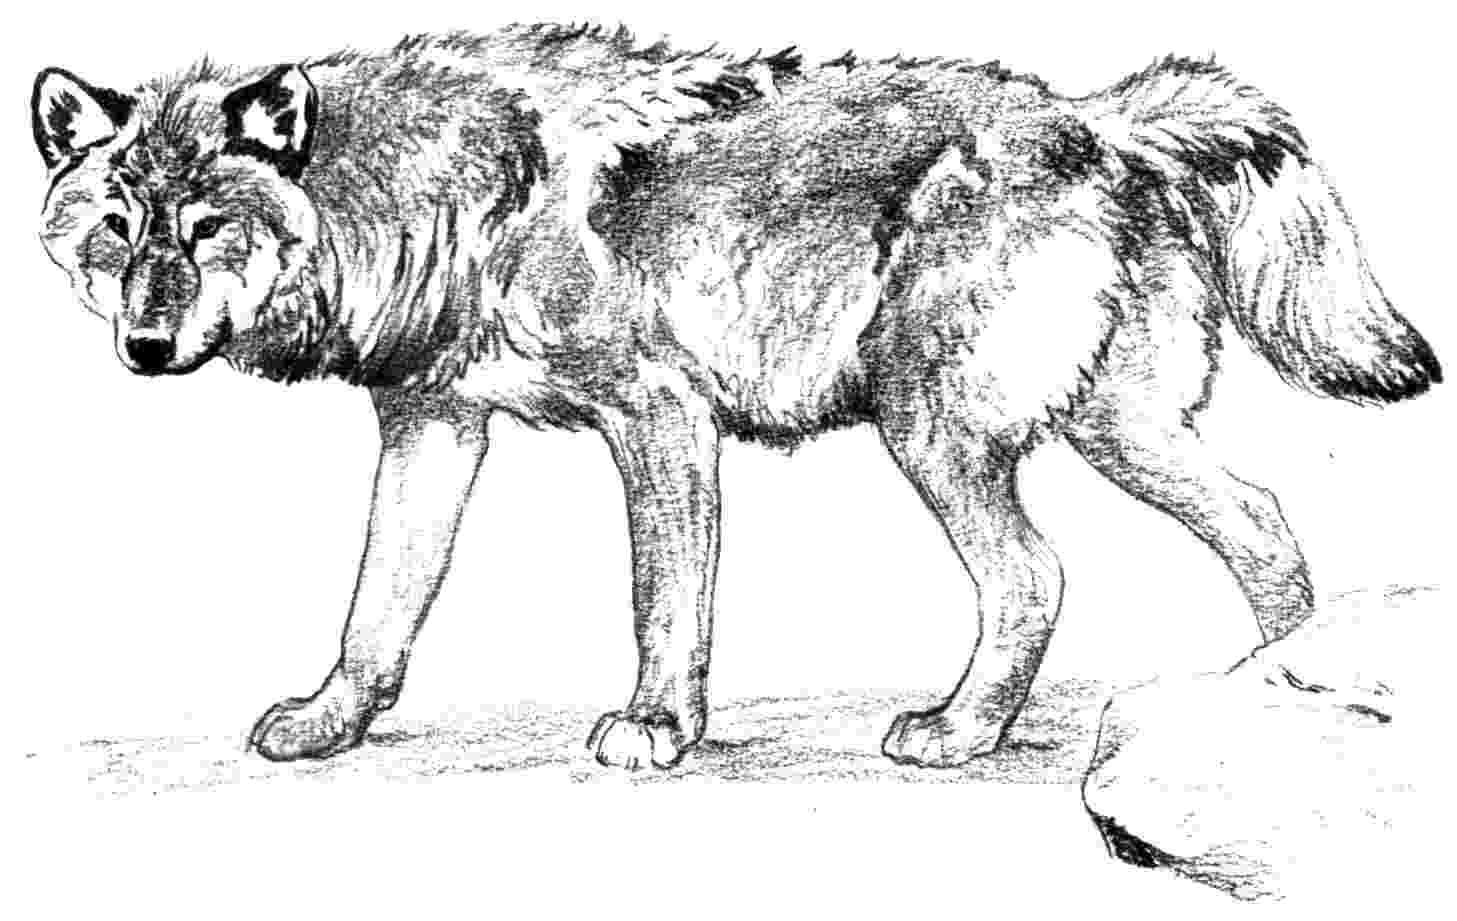 wolf colouring pages free printable wolf coloring pages for kids wolf colouring pages 1 3